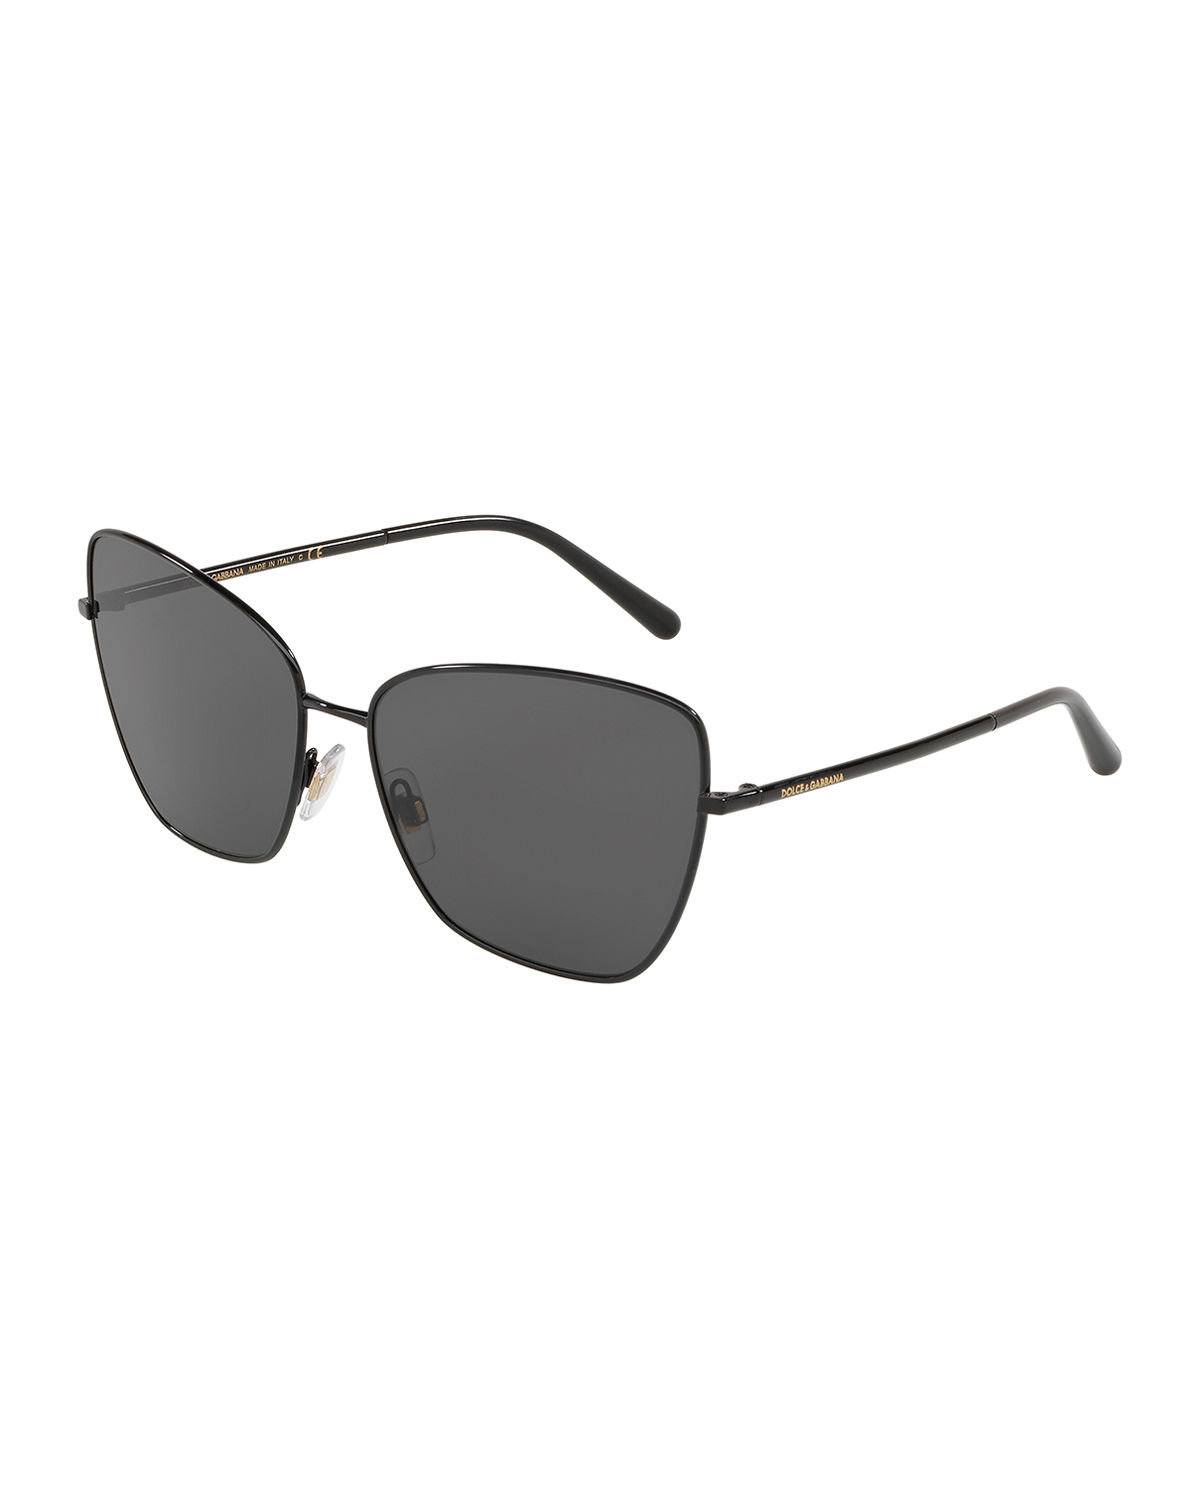 Mirrored Metal Cat-Eye Sunglasses